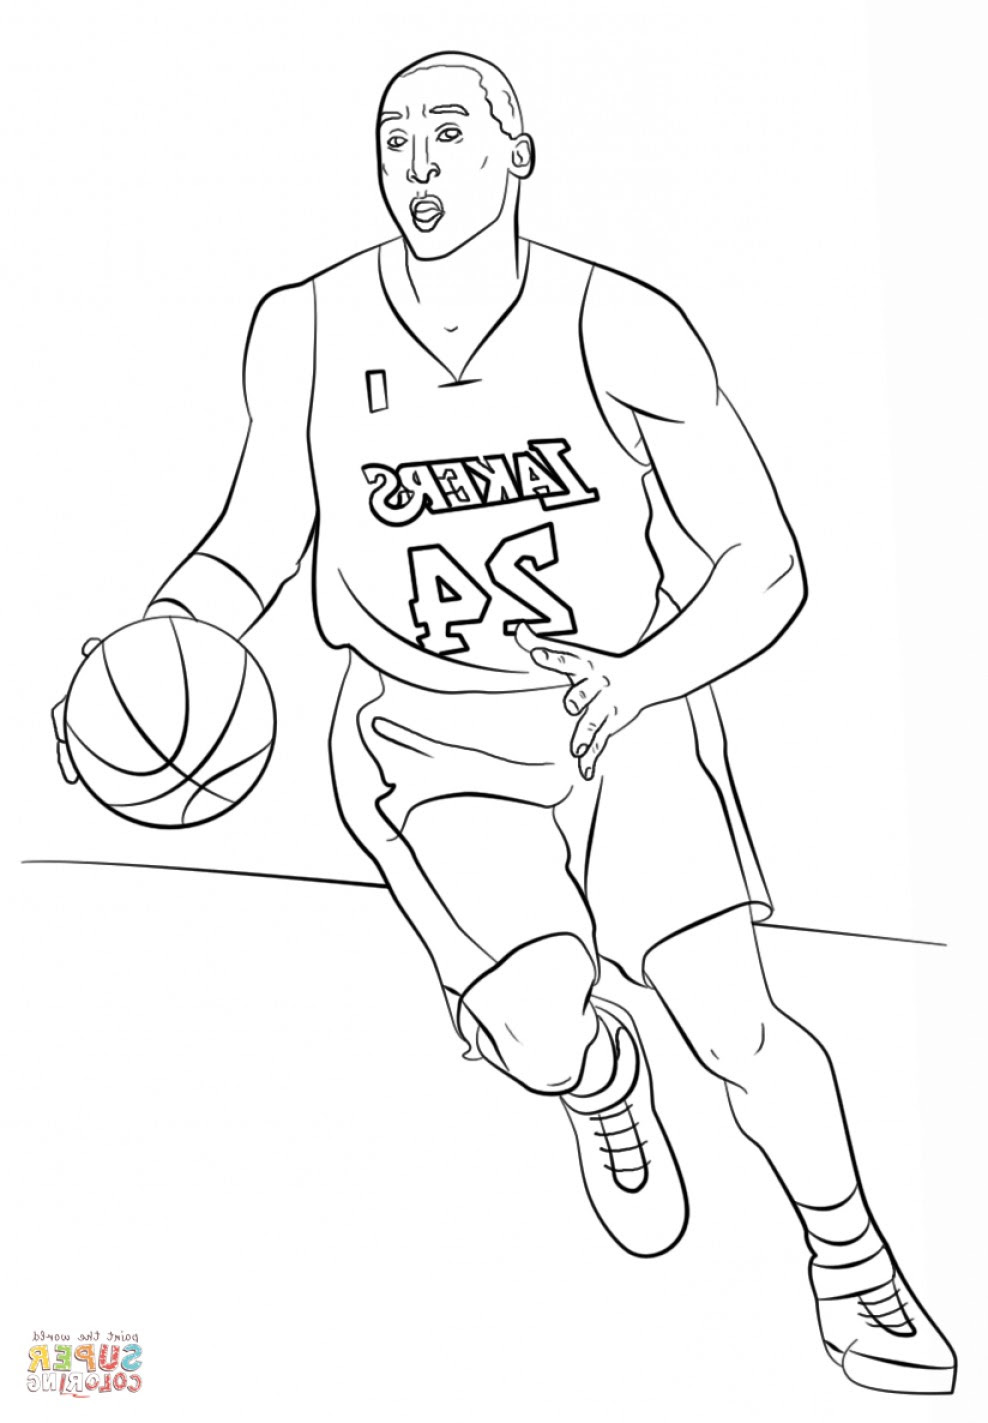 Michael Jordan Coloring Pages at GetColorings.com | Free ...